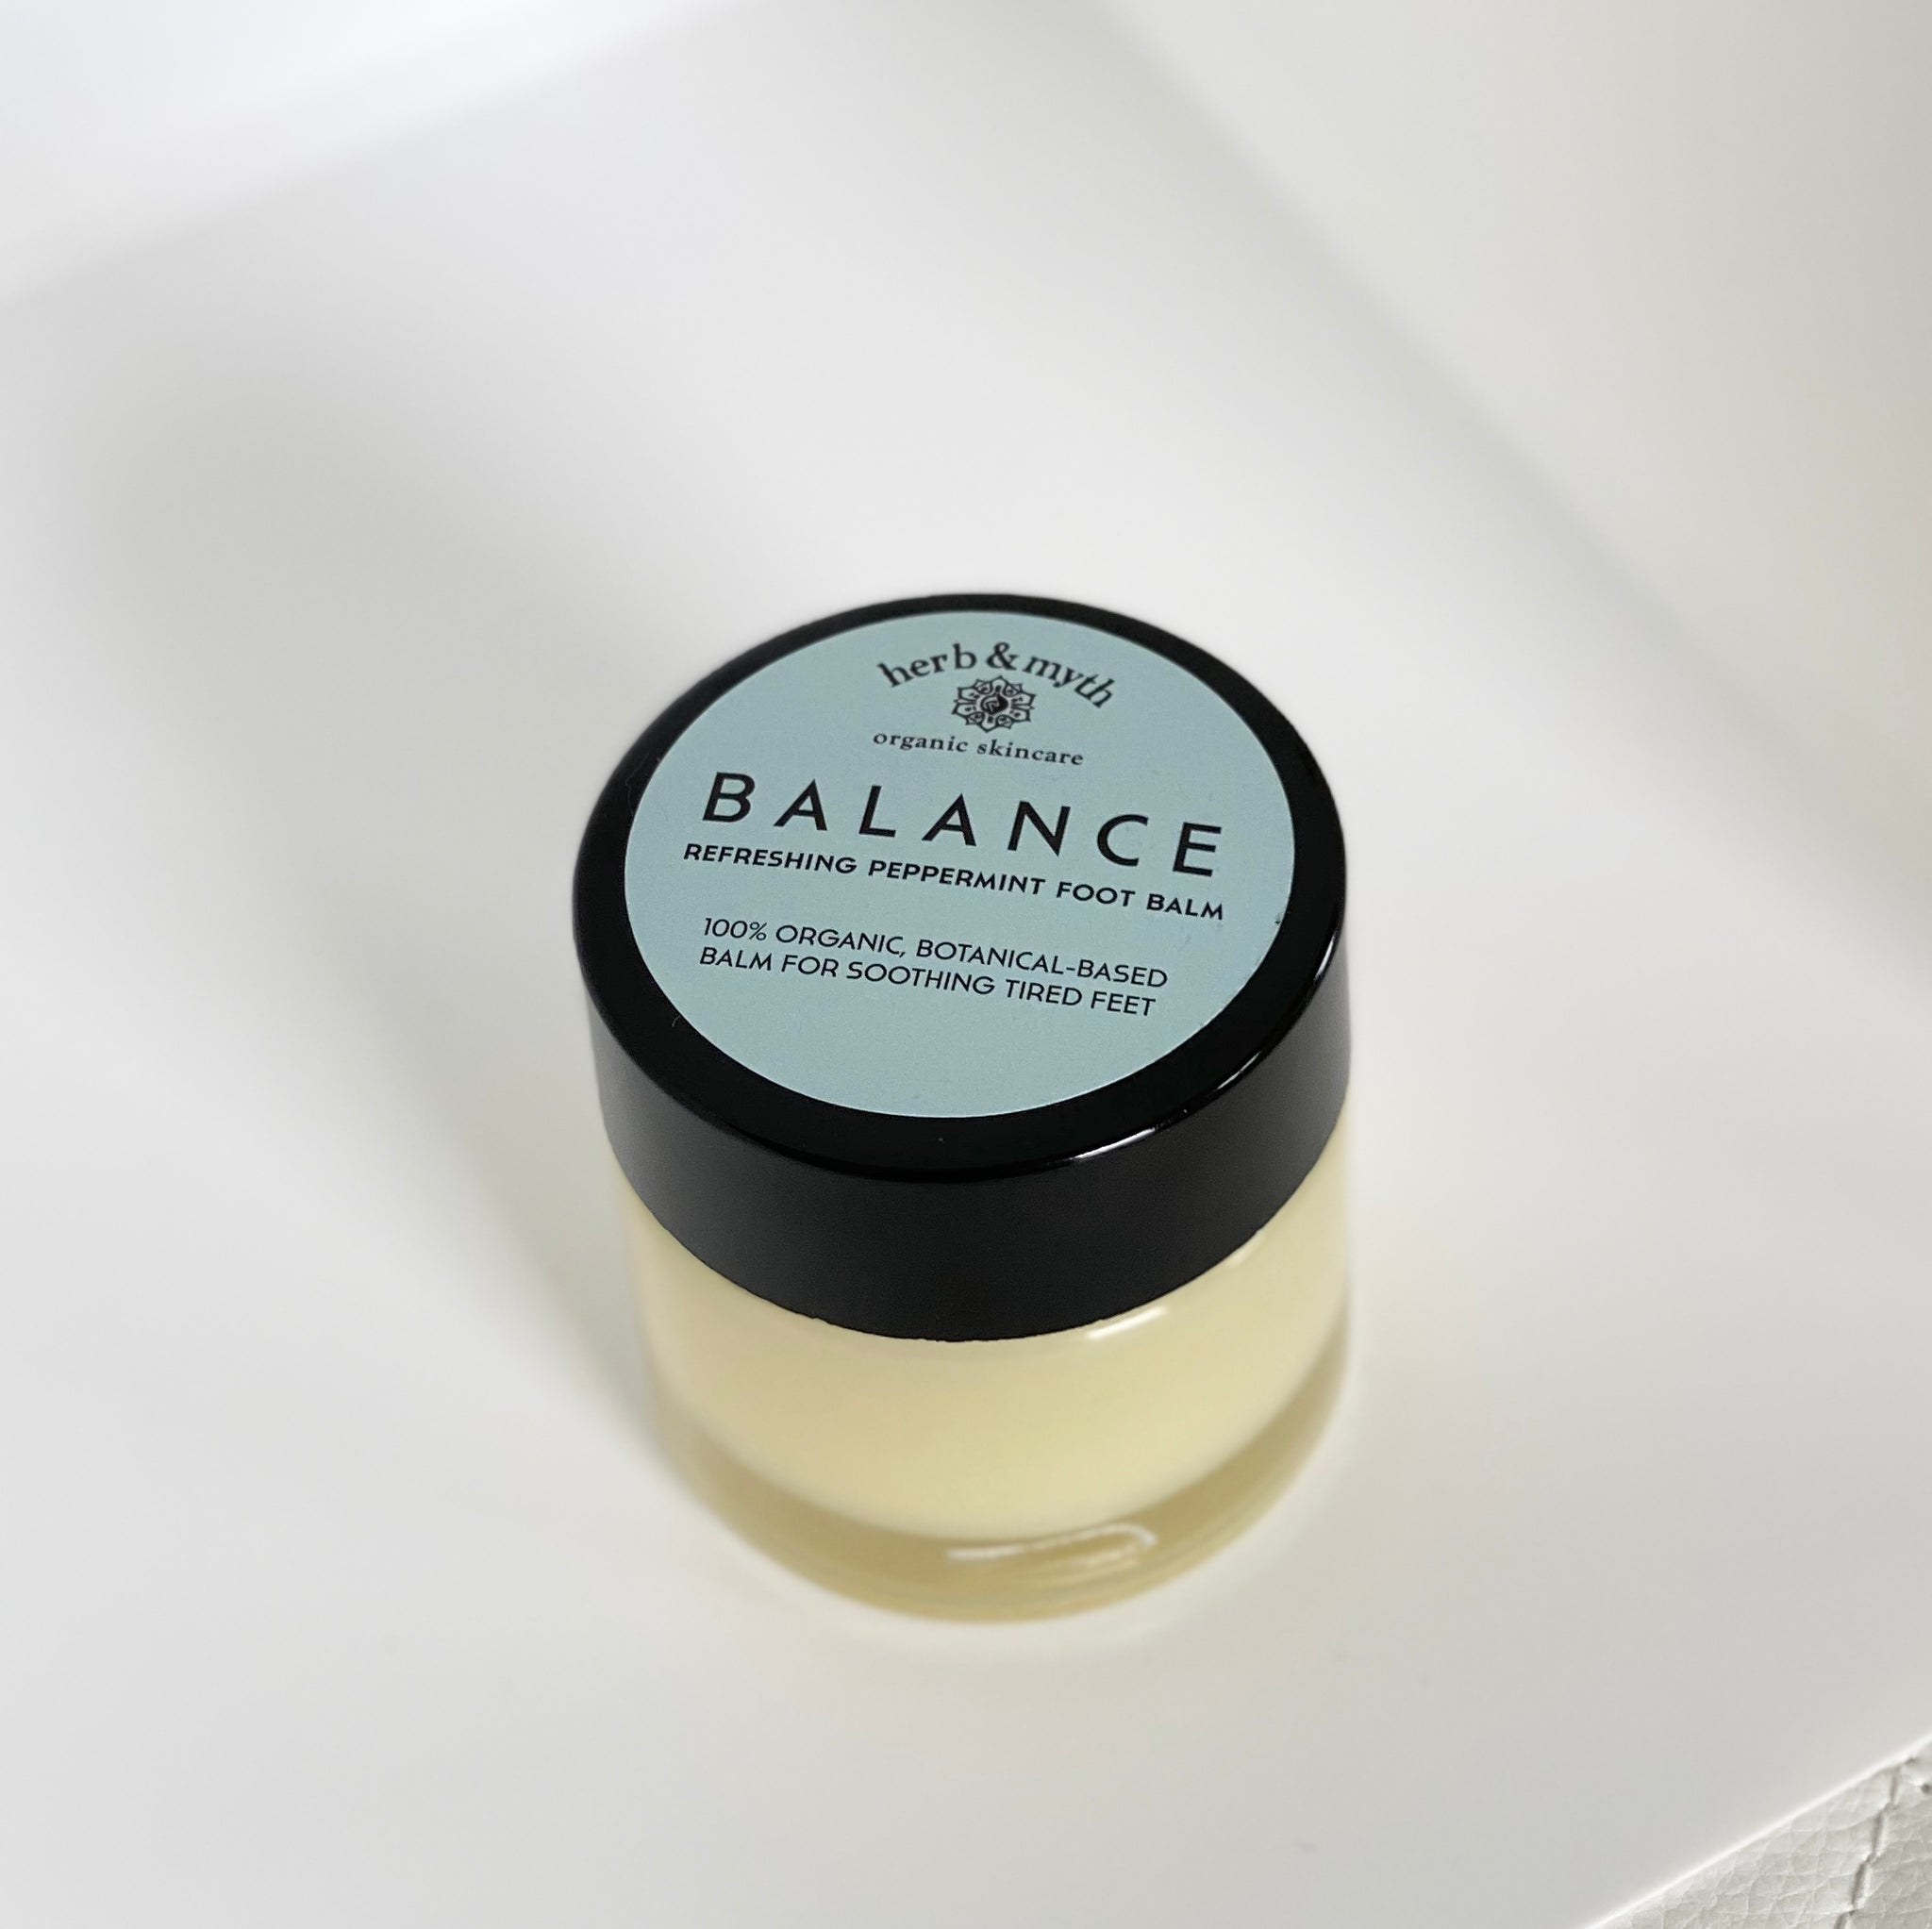 Balance Refreshing Peppermint Foot Balm